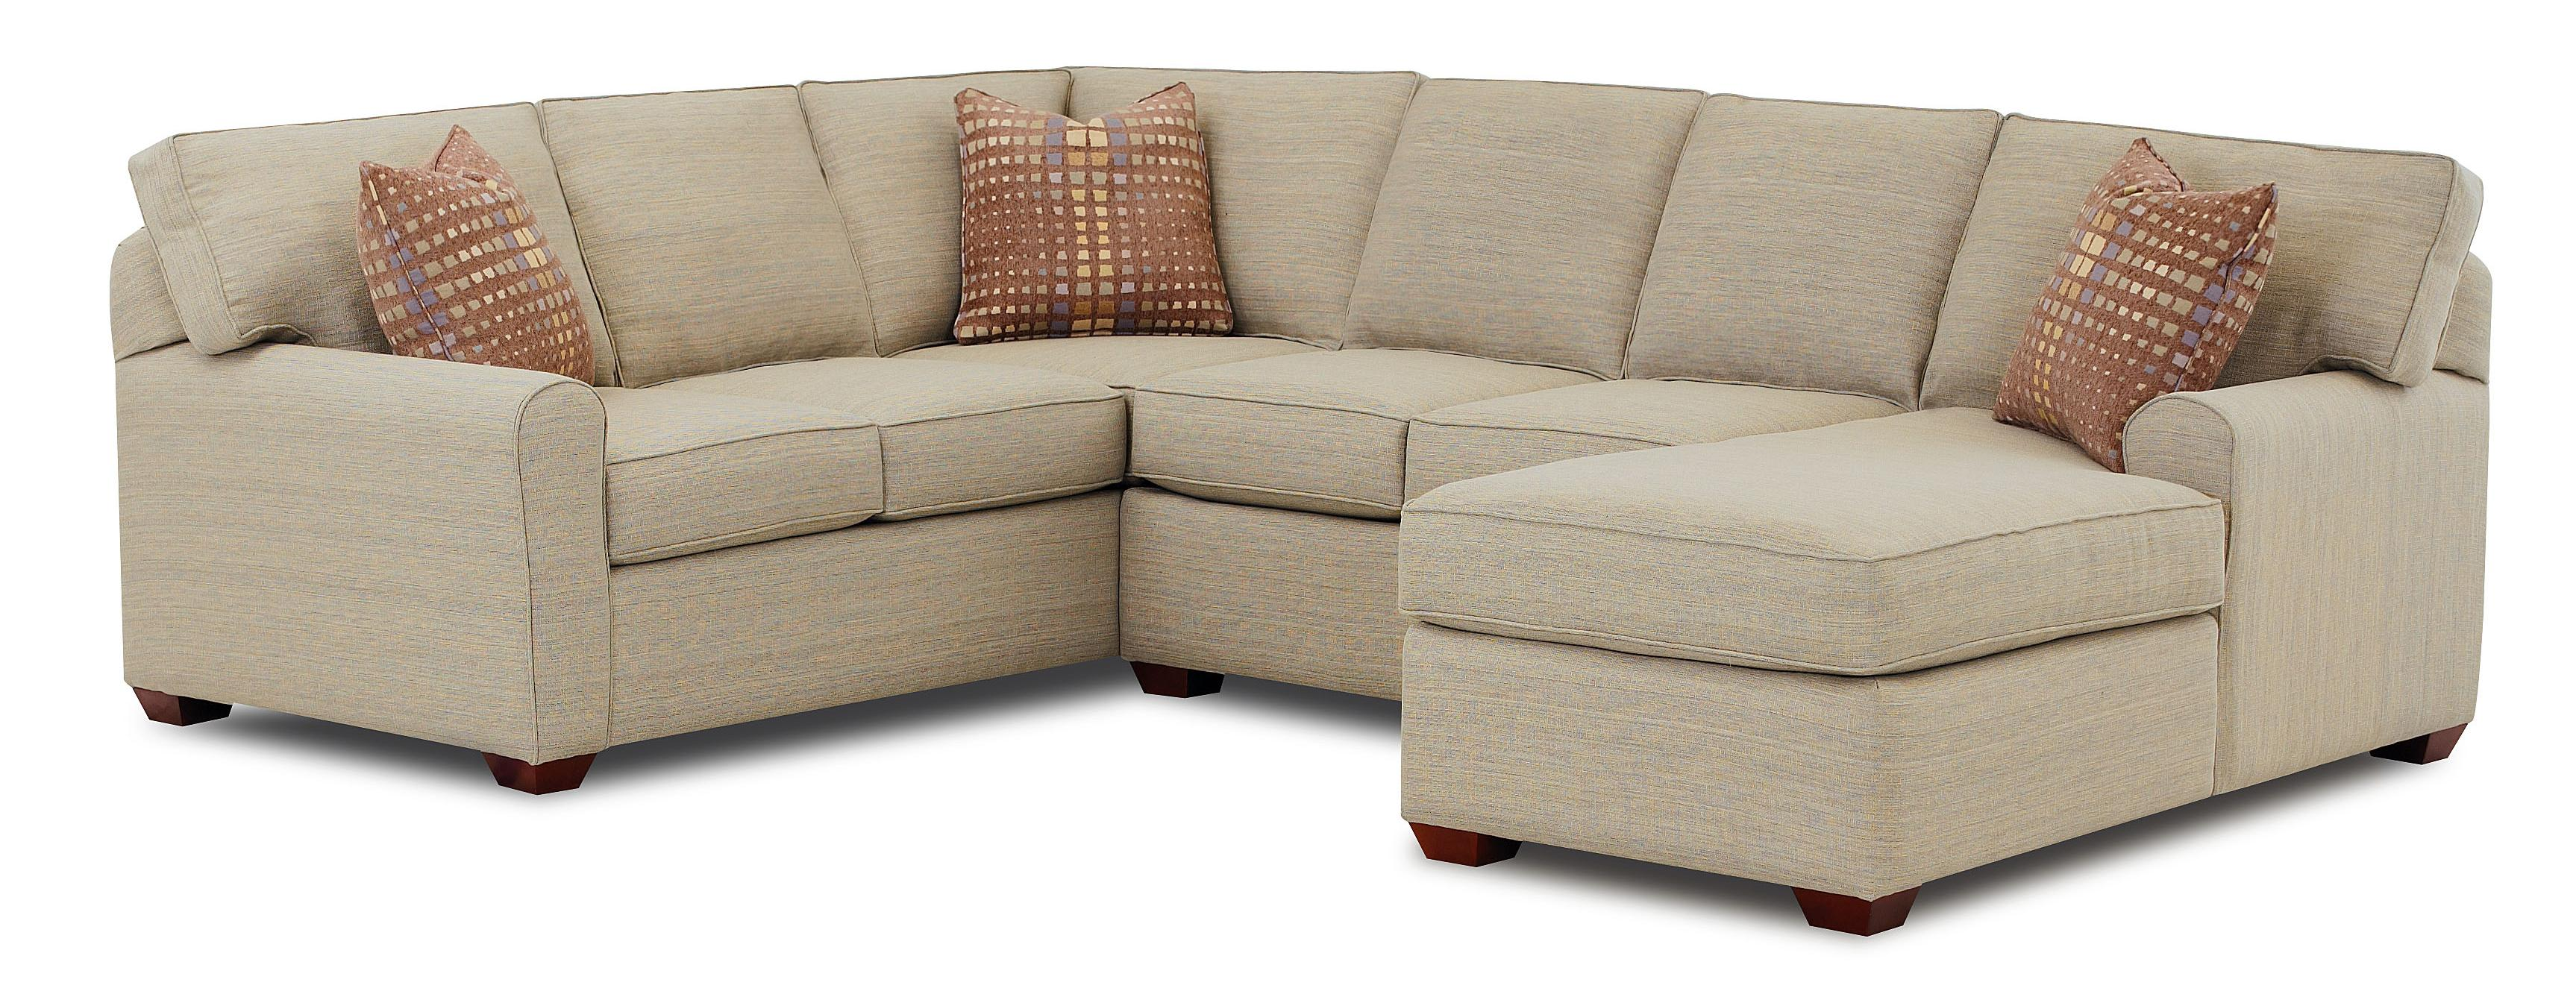 Sectional Sofa With Right Facing Chaise Lounge By Klaussner Wolf And Gardiner Wolf Furniture